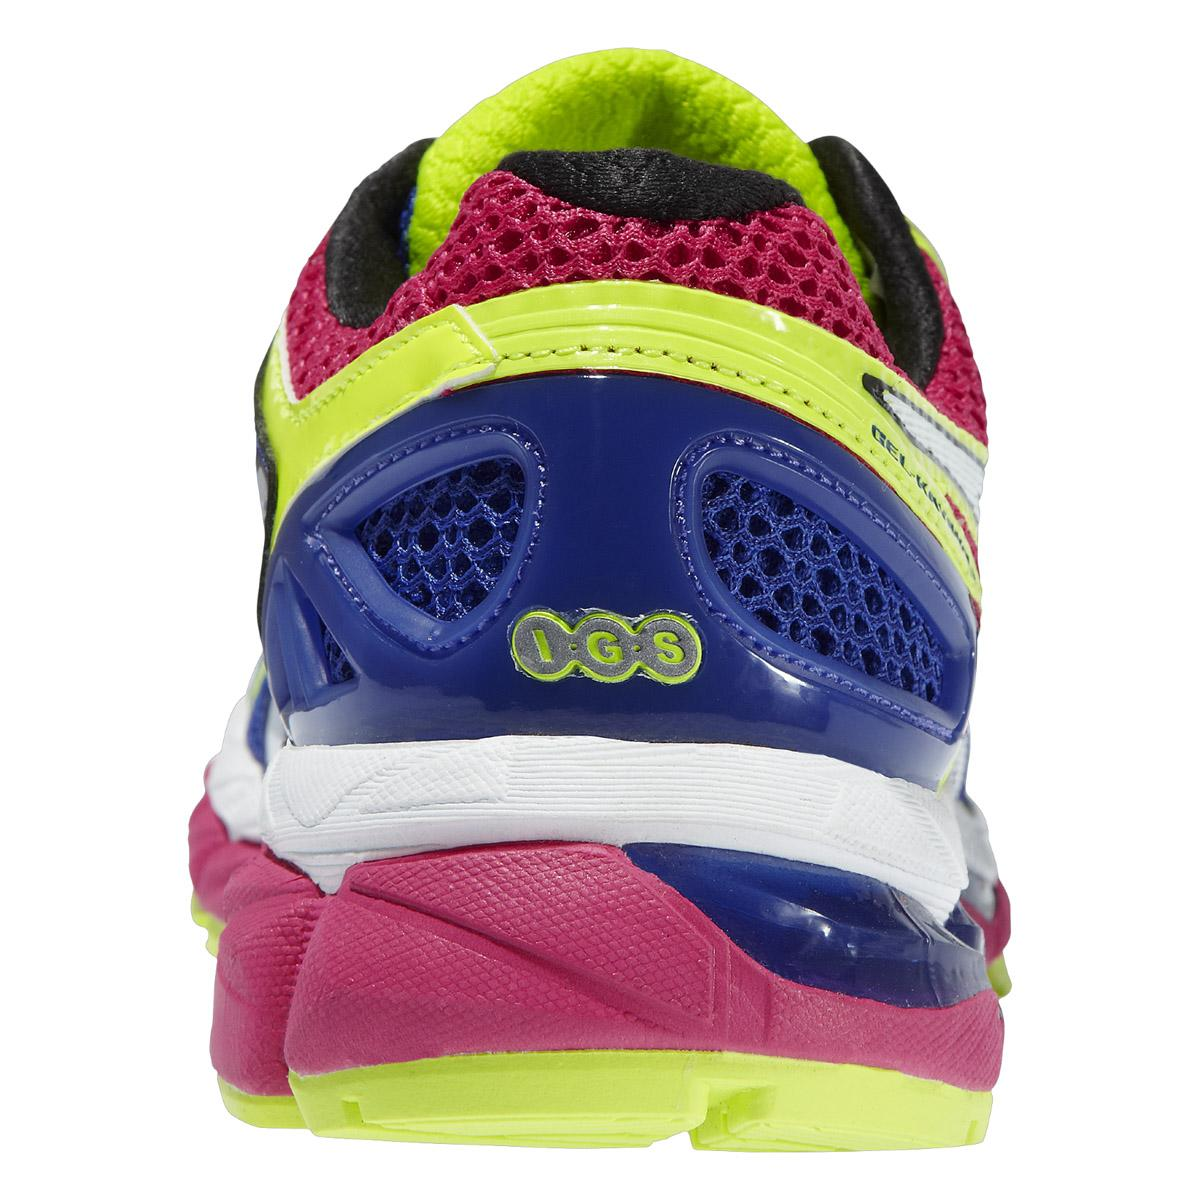 Asics Womens GEL-Kayano 21 Running Shoes - Blue/Flash Yellow